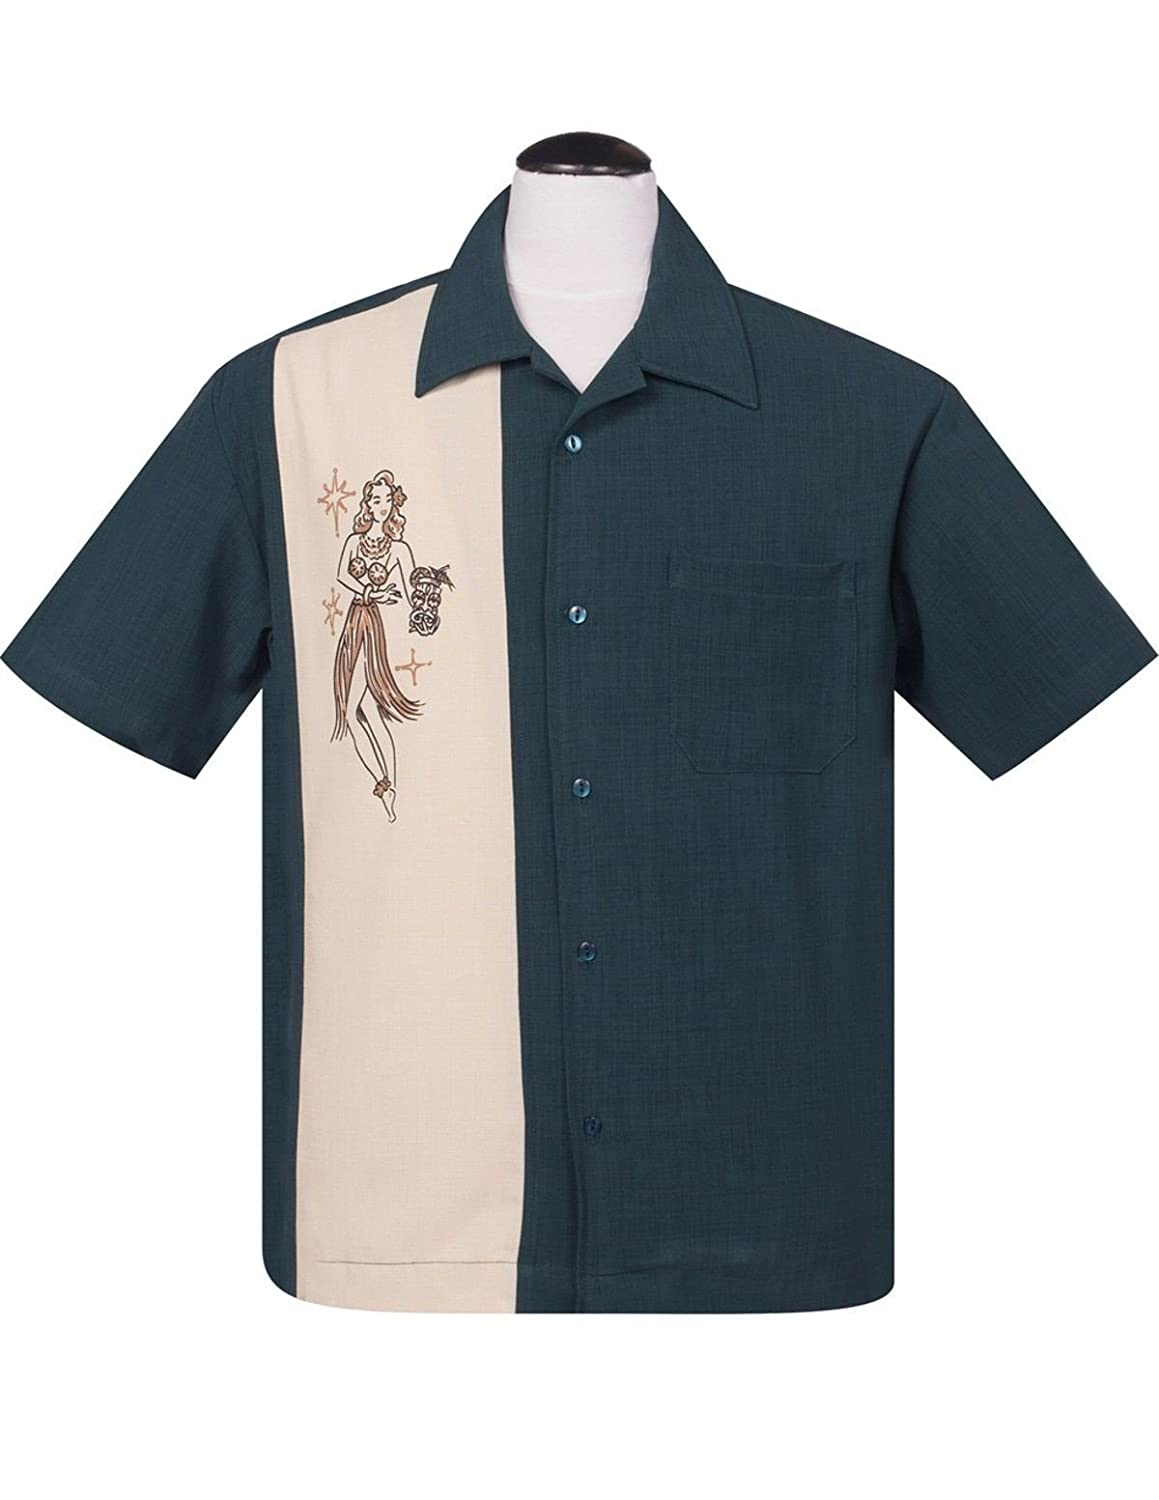 Steady Clothing Mai Tai Mirage Button Up in Teal Tiki Bowling Shirt